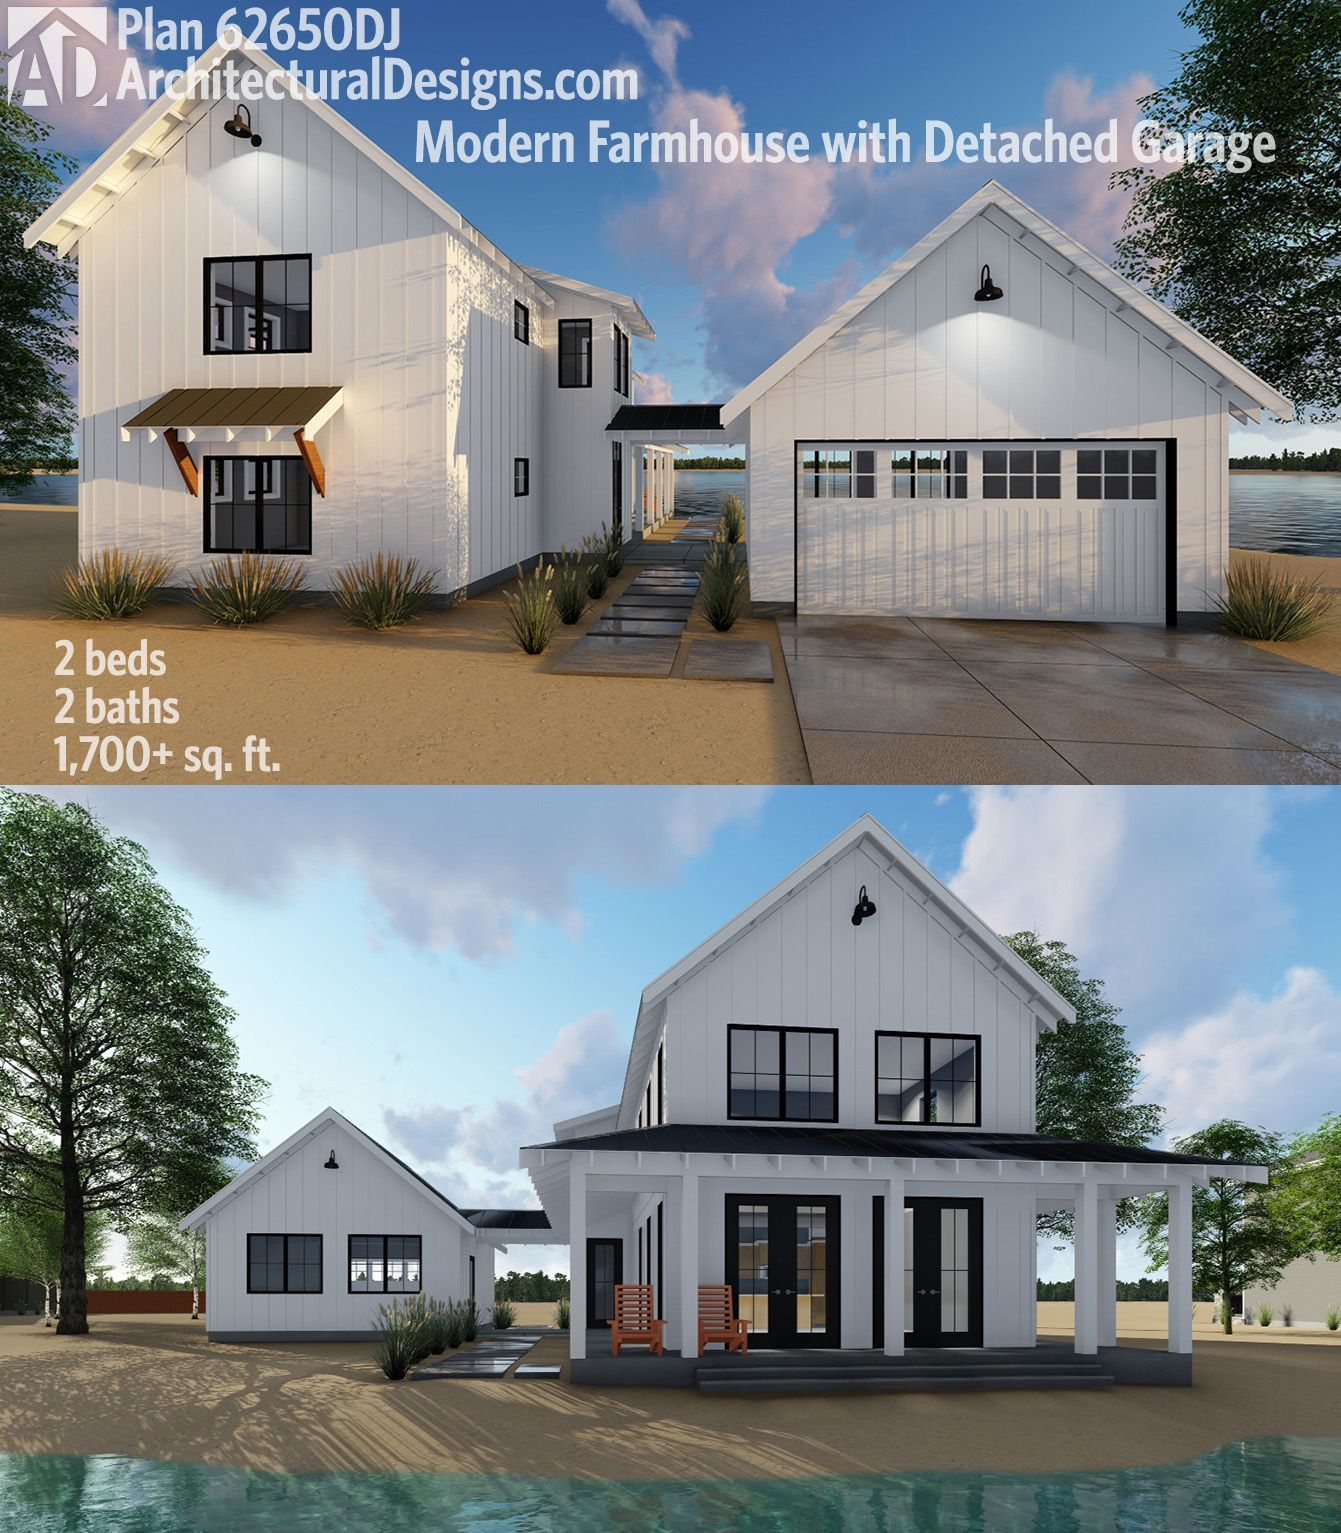 Architectural Designs Modern Farmhouse Plan 62650DJ 2